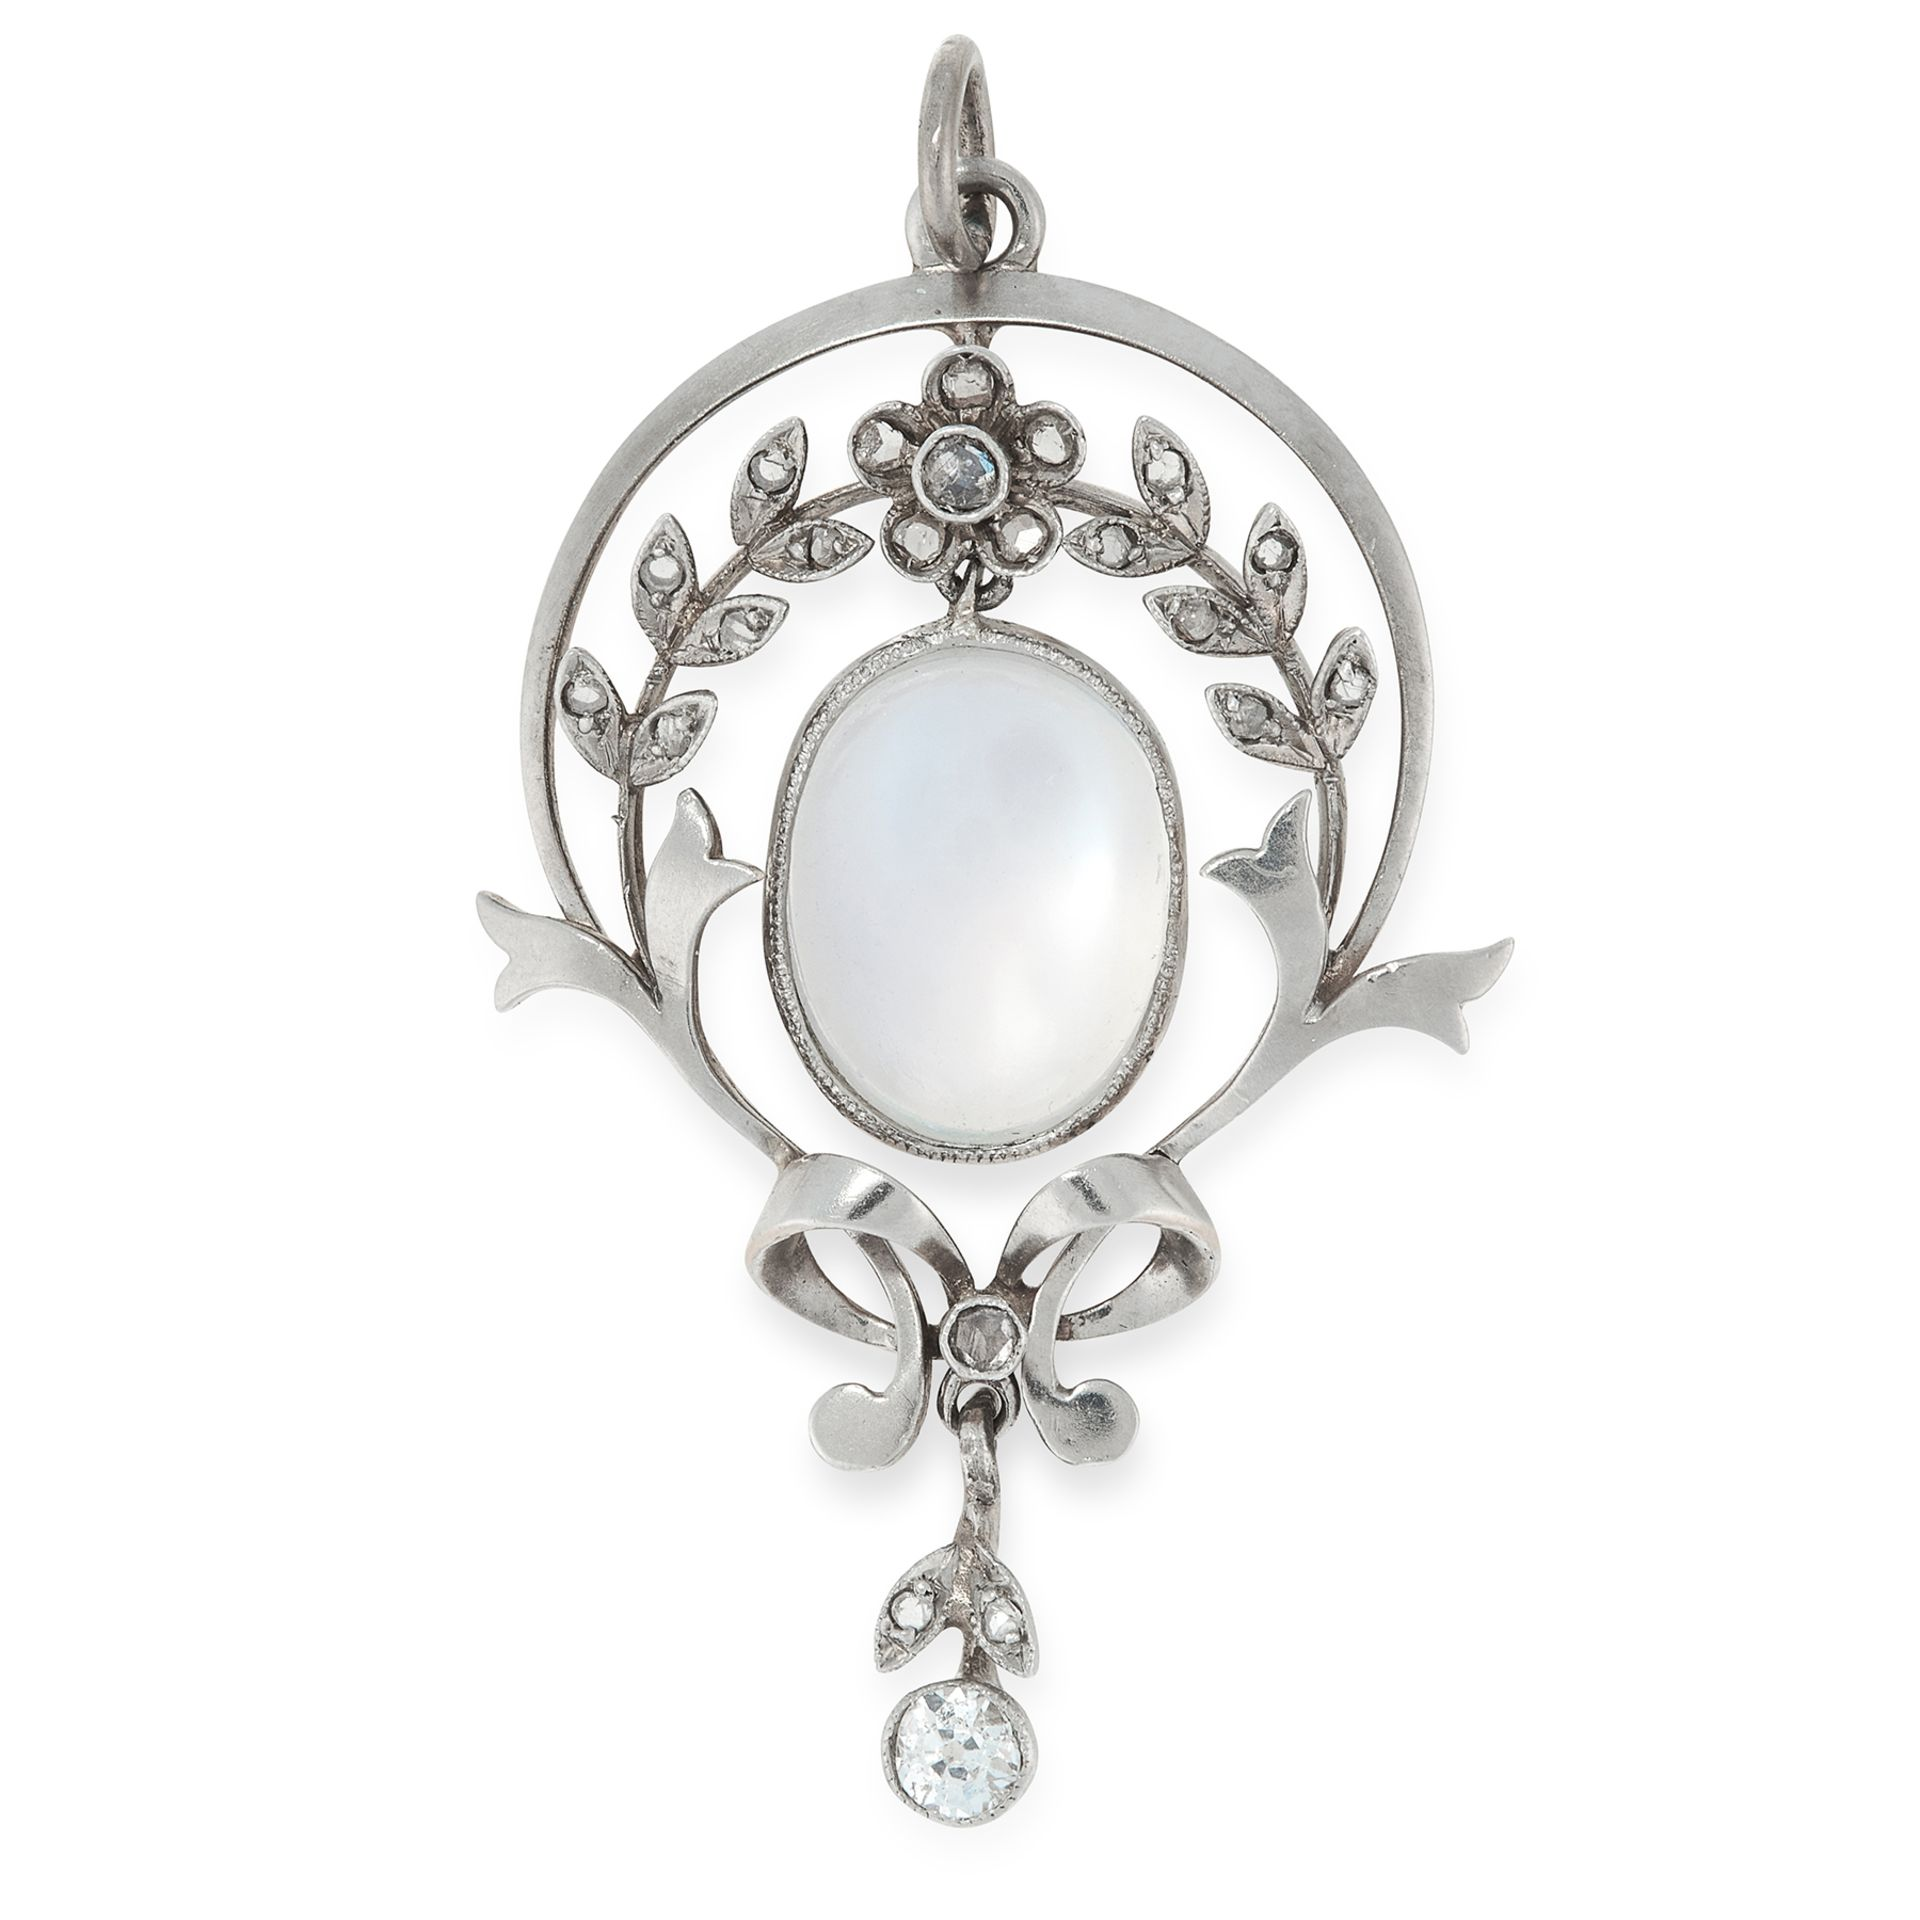 A MOONSTONE AND DIAMOND PENDANT, CIRCA 1900 in yellow gold, set with an oval cabochon moonstone